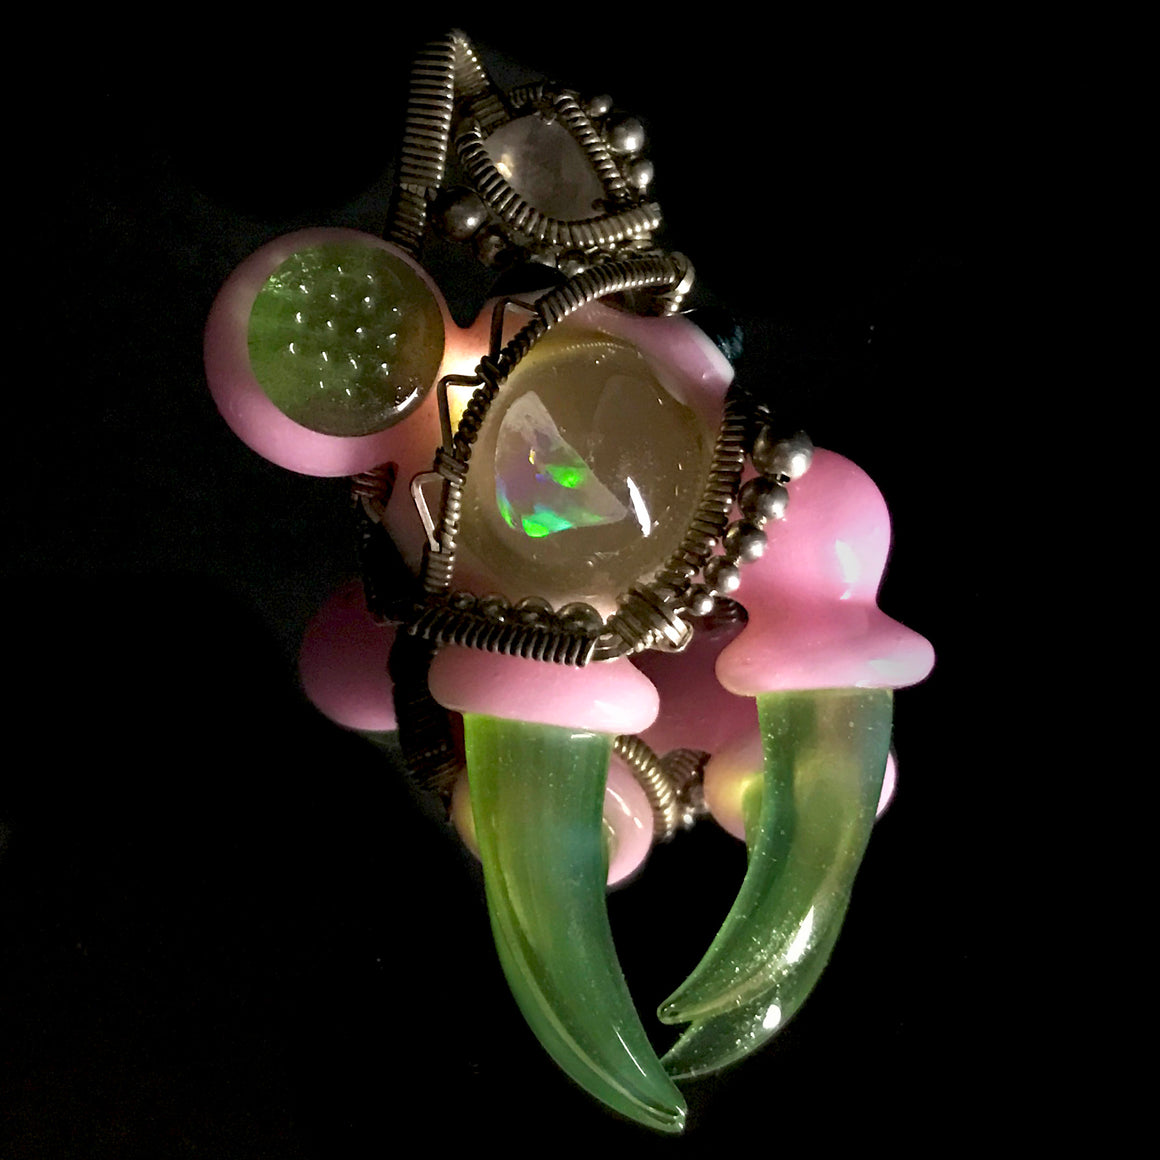 Collab Wire-wrapped Warlock Pendant - Pink Cadillac/Slyme/Unobtainium